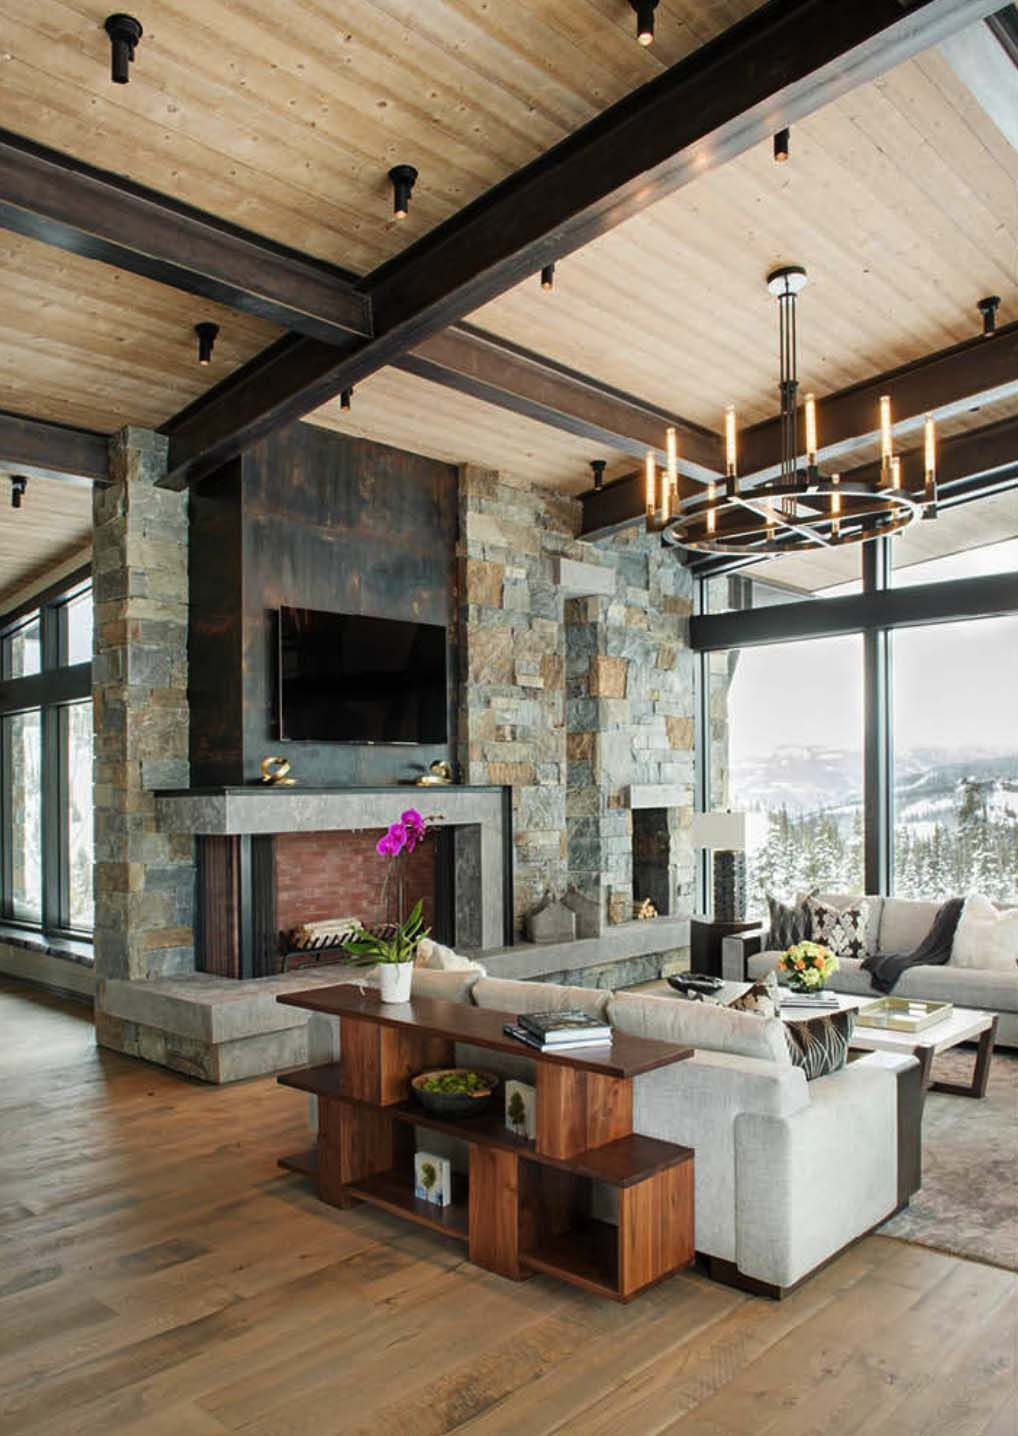 Modern-rustic mountain home with spectacular views in Big Sky country #modernrusticinteriors